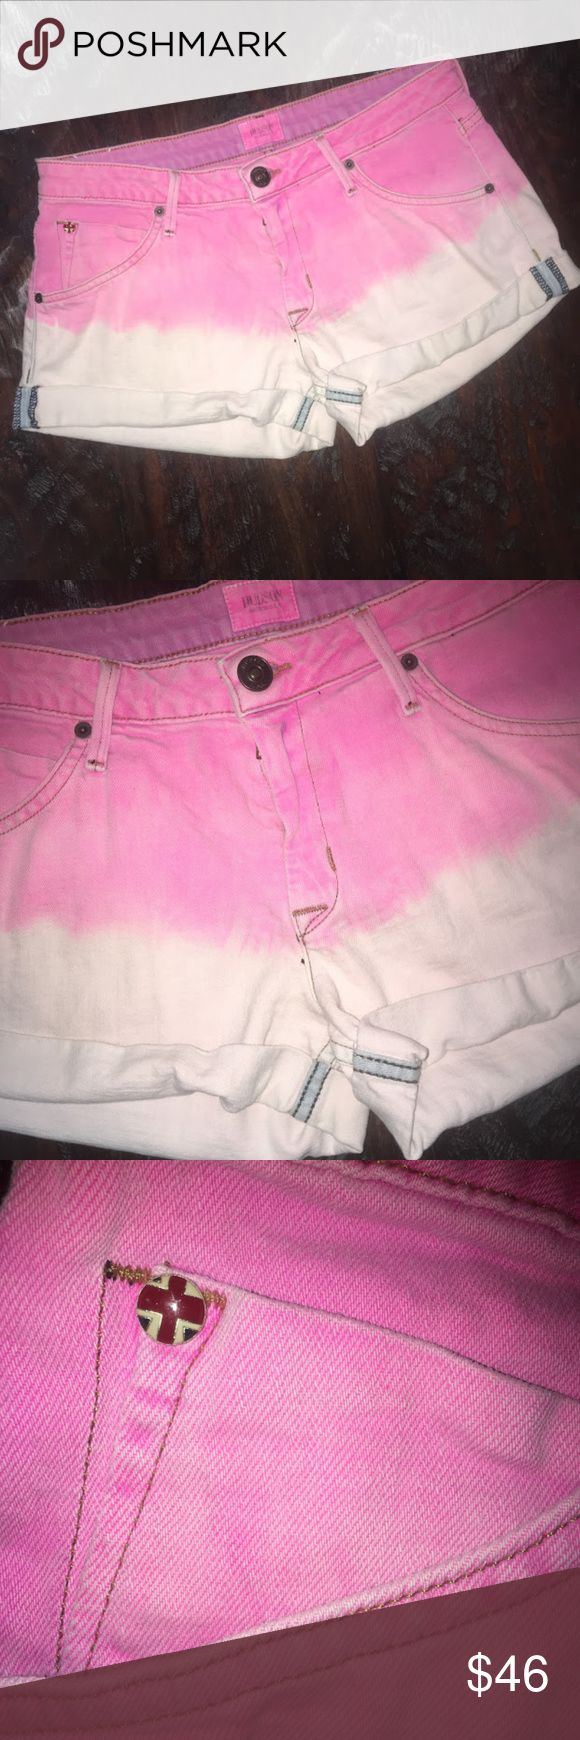 """Hudson pink and white ombre hampton cuffed shorts Hudson jeans pink and white ombre hampton cuffed shorts. Size 28. Top is bright pink then fades down to a white/slightly pink. Bottoms are cuffed. Back pockets button. 98% cotton and 2% elastan. 33"""" waist. 2"""" inseam. 8.5"""" rise. 9.5"""" length. 24.5"""" thigh. No trades, offers welcome! Hudson Jeans Shorts Jean Shorts"""